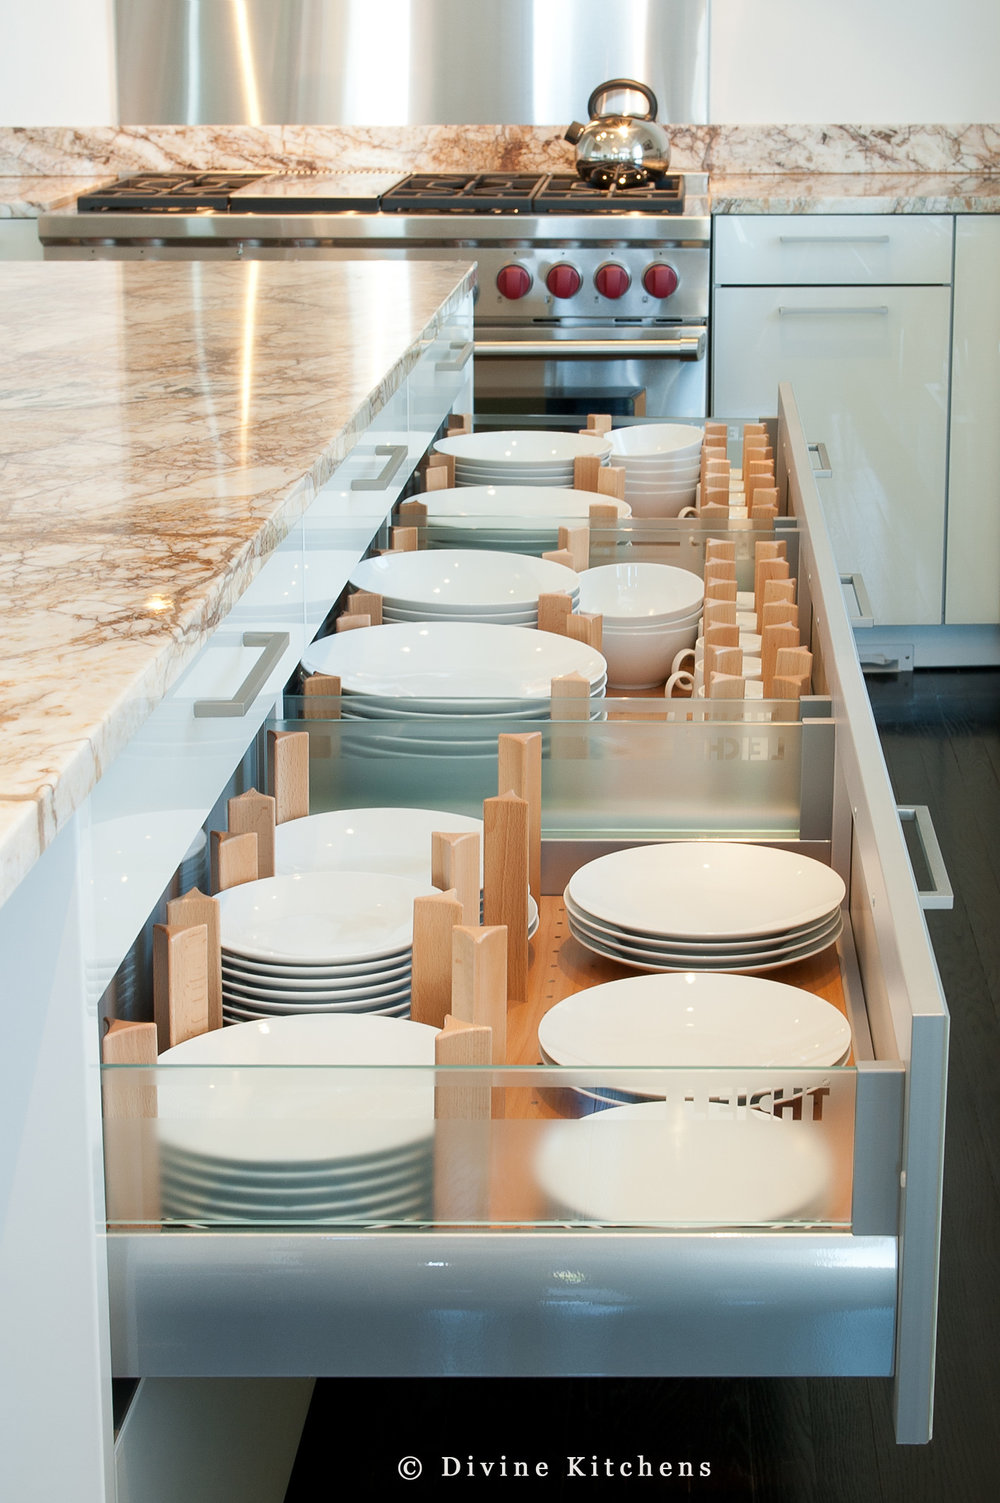 Modern leicht kitchen with high gloss lacquer cabinets. Marble countertops and wolf appliances. Interior drawer accessories of solid wood.